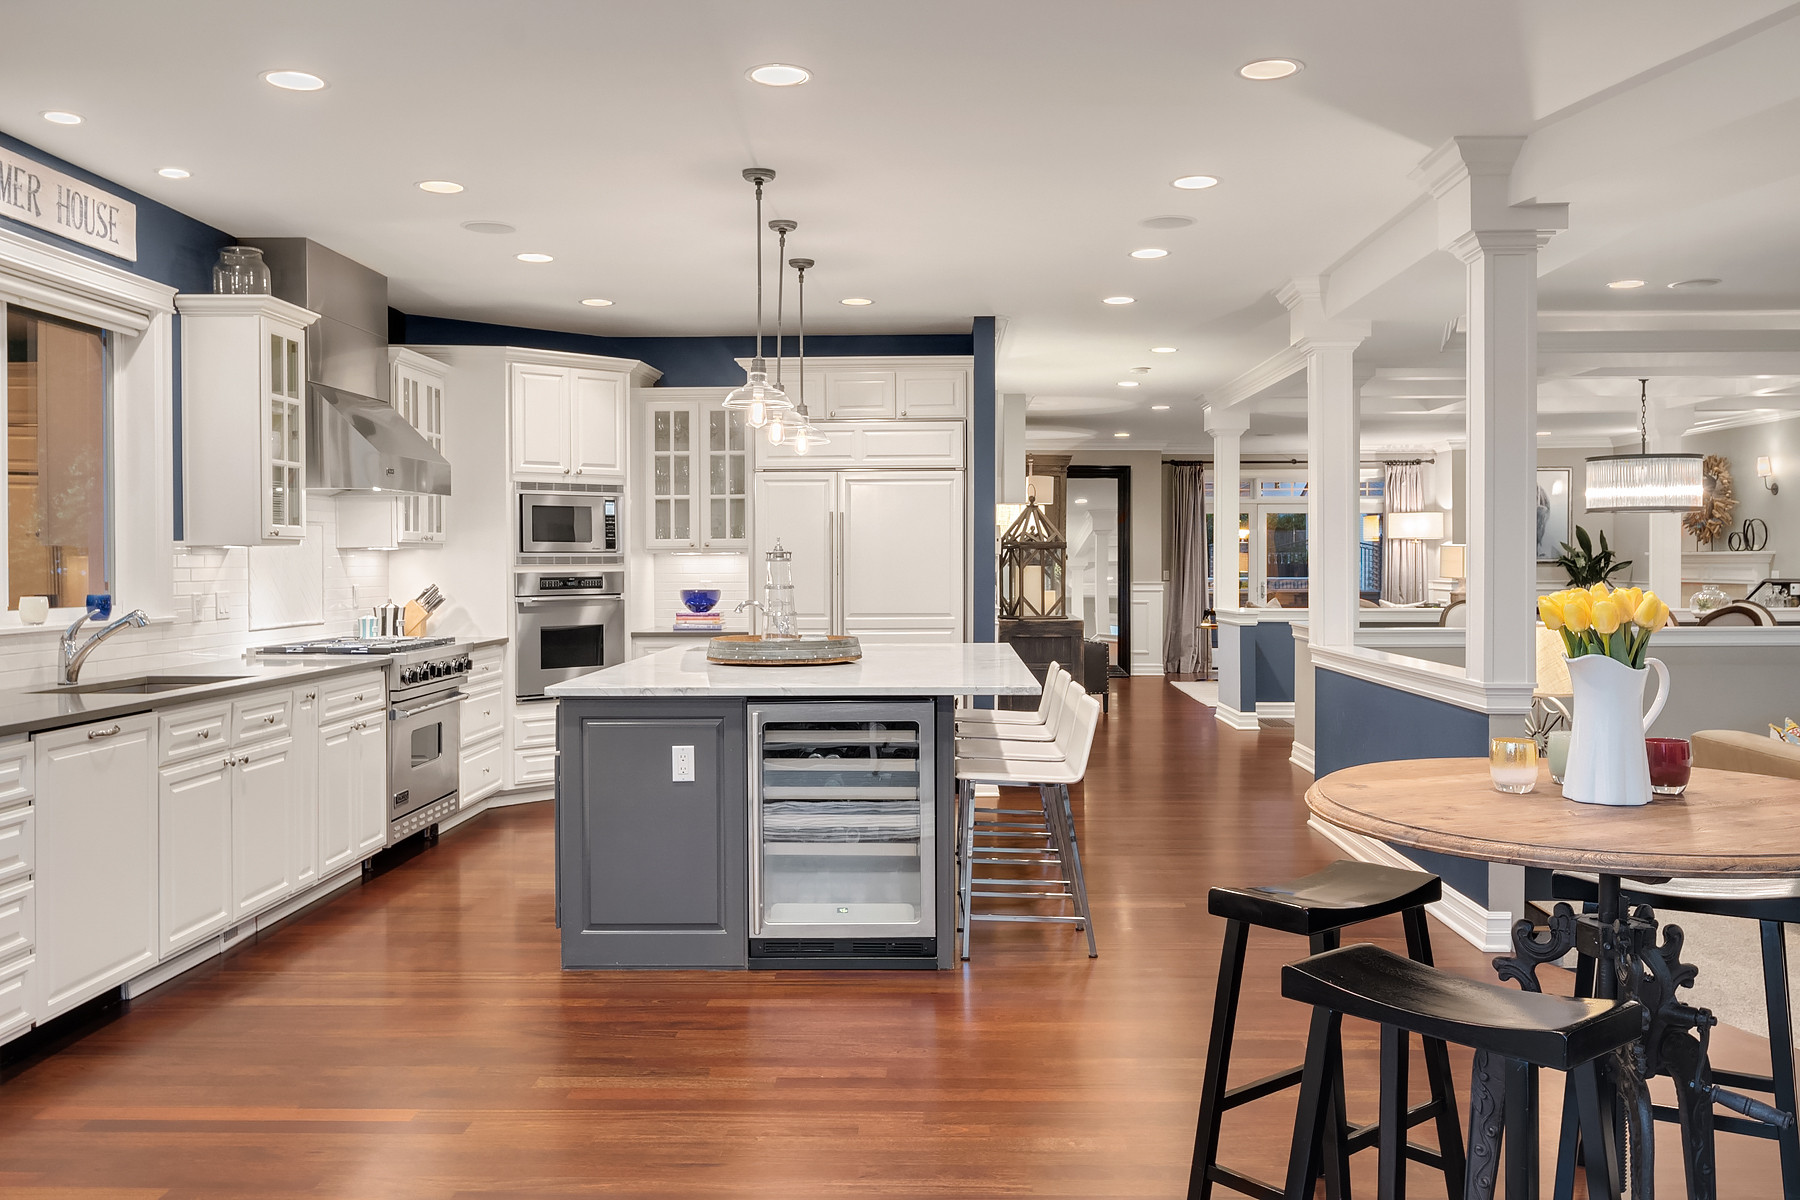 Kitchen and open living/dining